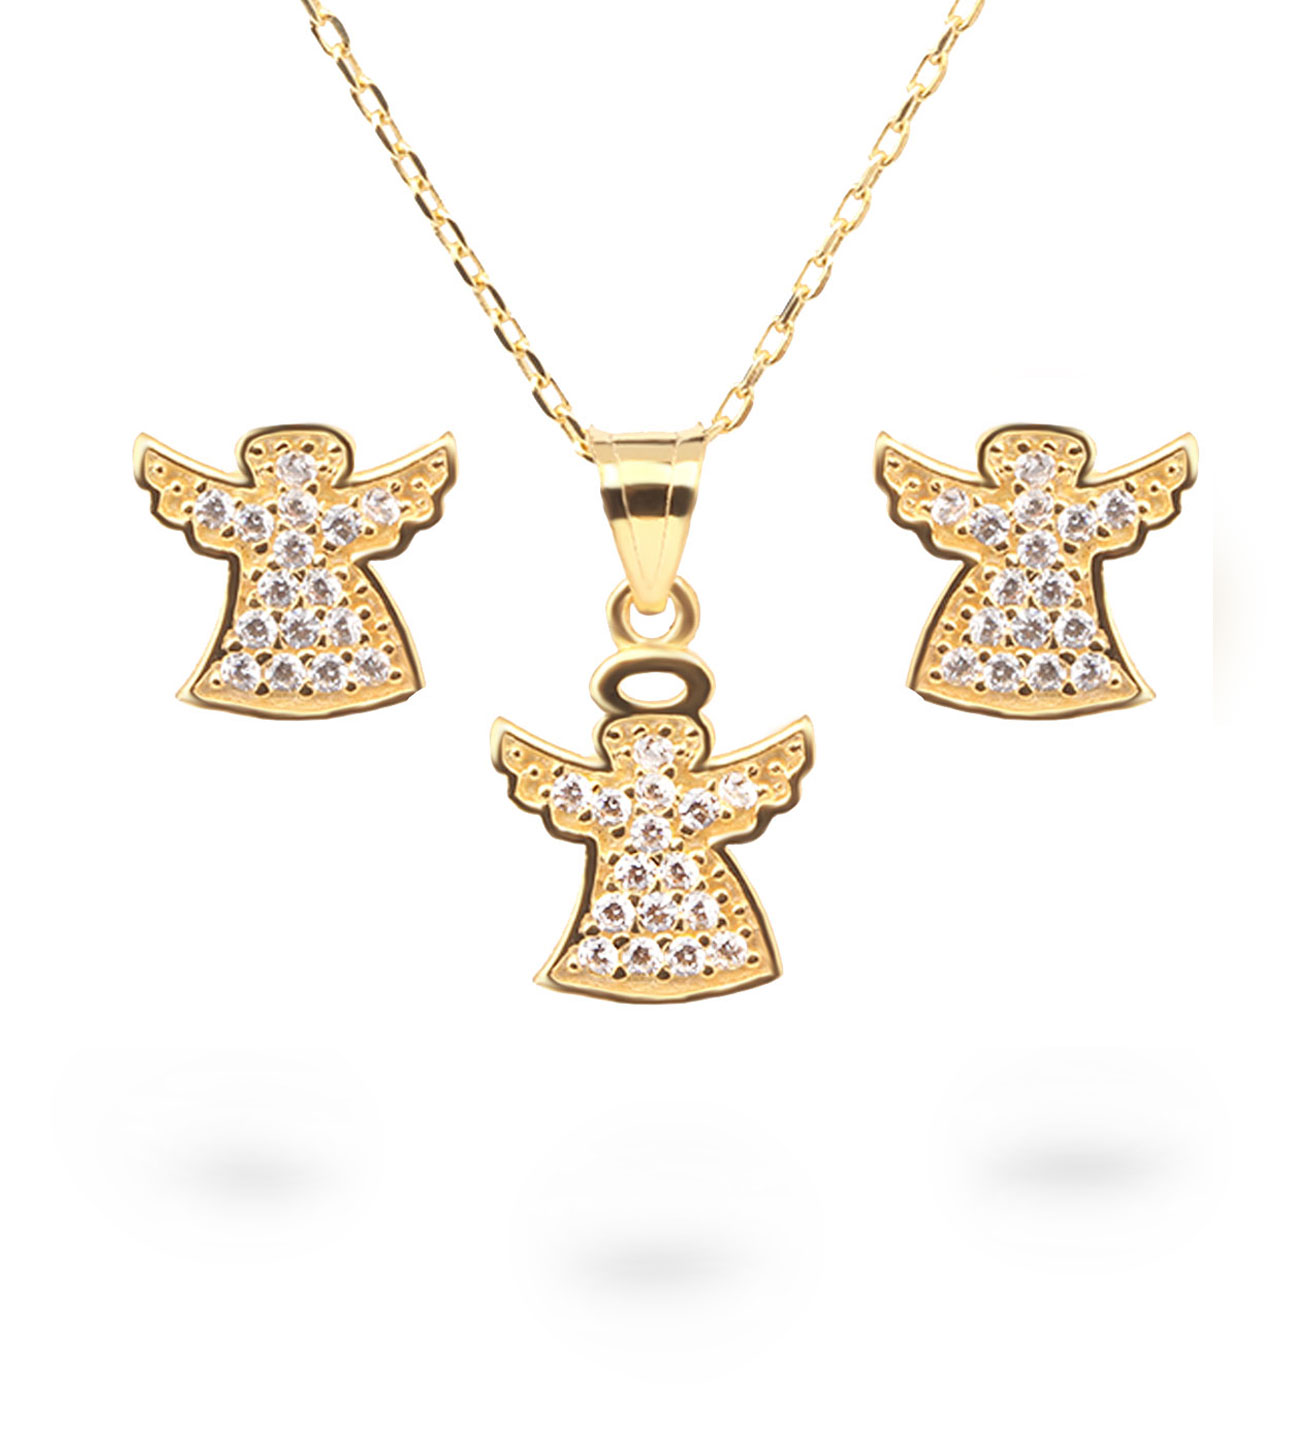 Women's Angel Pendant Gold Necklace & Earrings Set